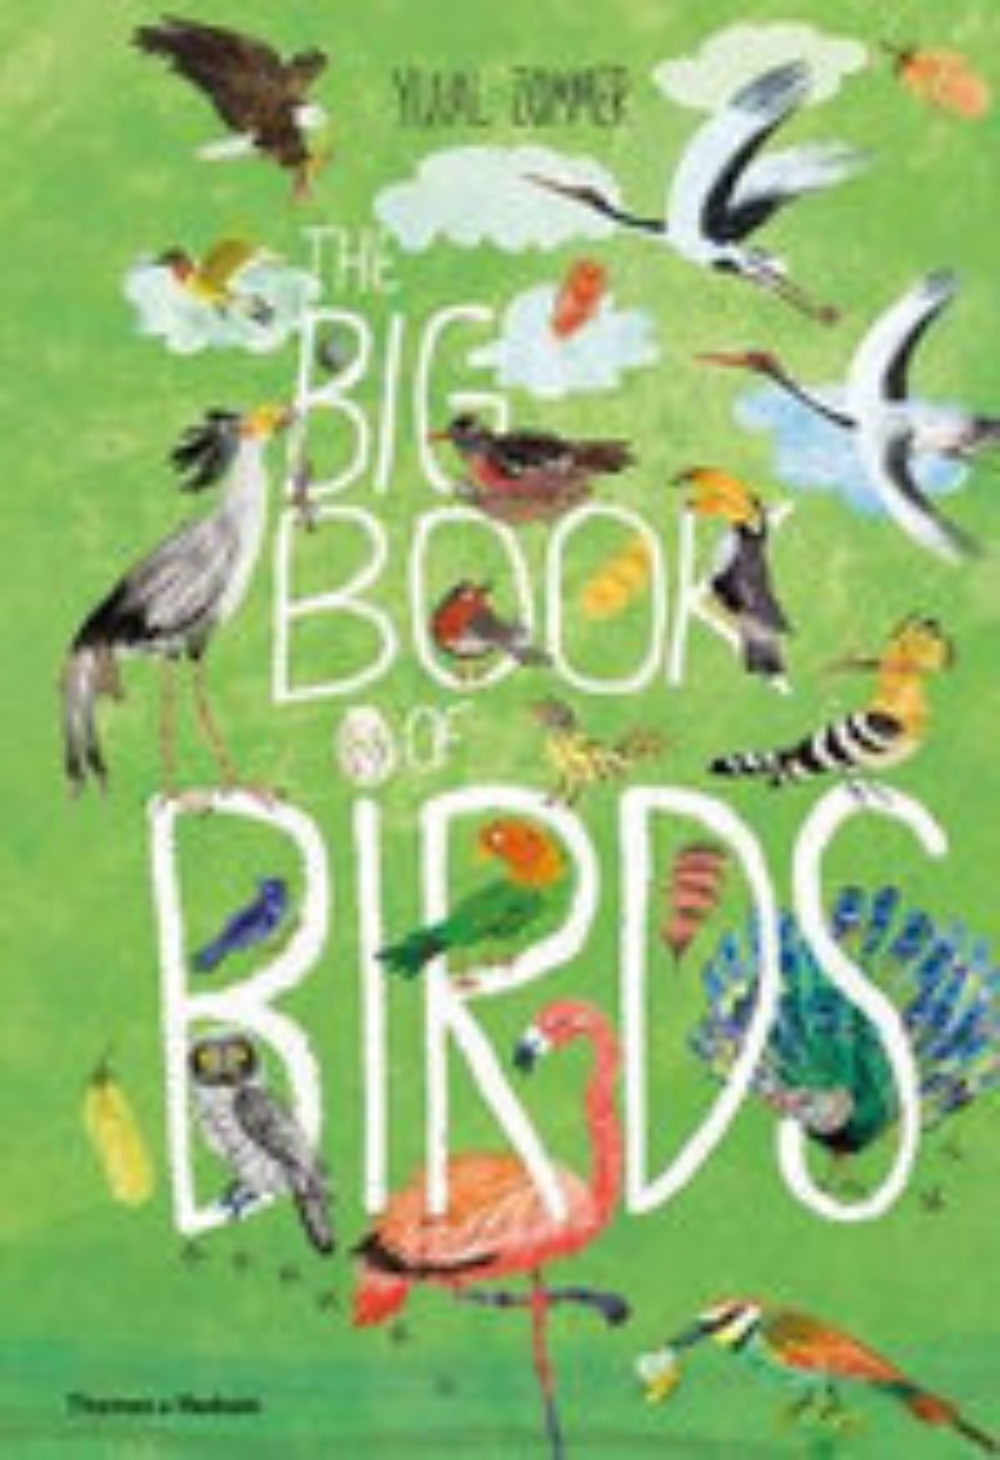 the-big-book-of-birds.jpg.pagespeed.ce.EbB-40bm8N.jpg?mtime=20200521122640#asset:18572:midWidth